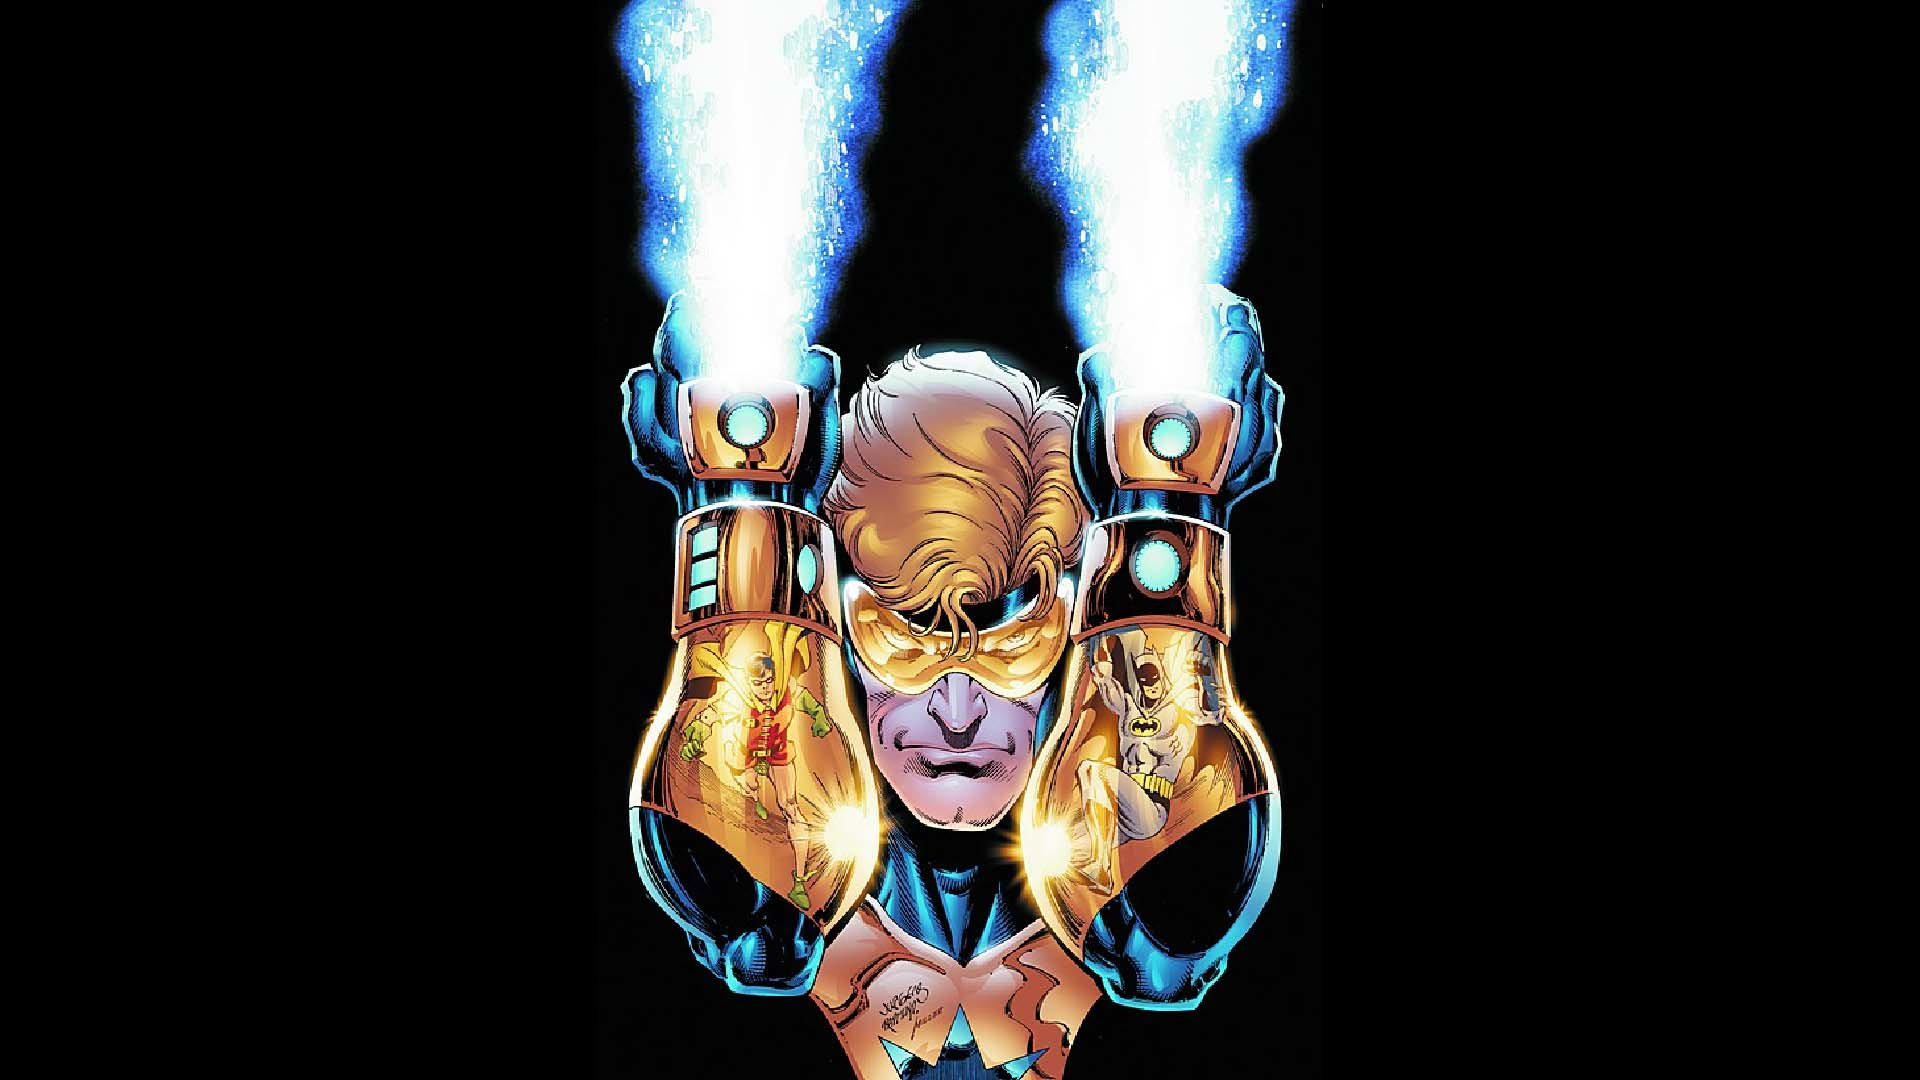 Best Booster Gold wallpaper ID409036 for High Resolution full hd 1920x1080